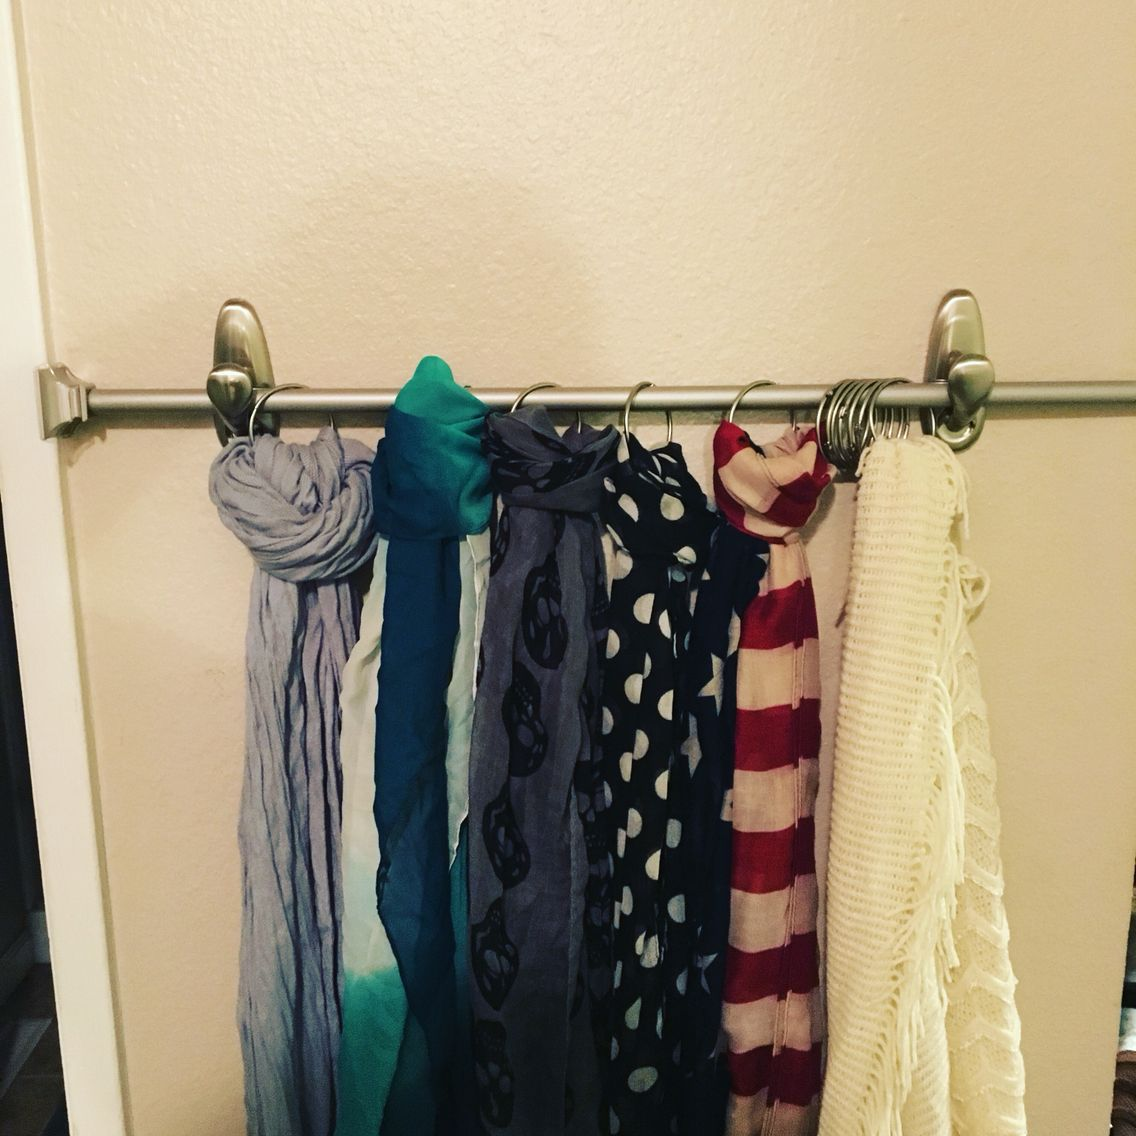 Scarf Rack Want To Avoid Holes In Your Walls Well Here You Go